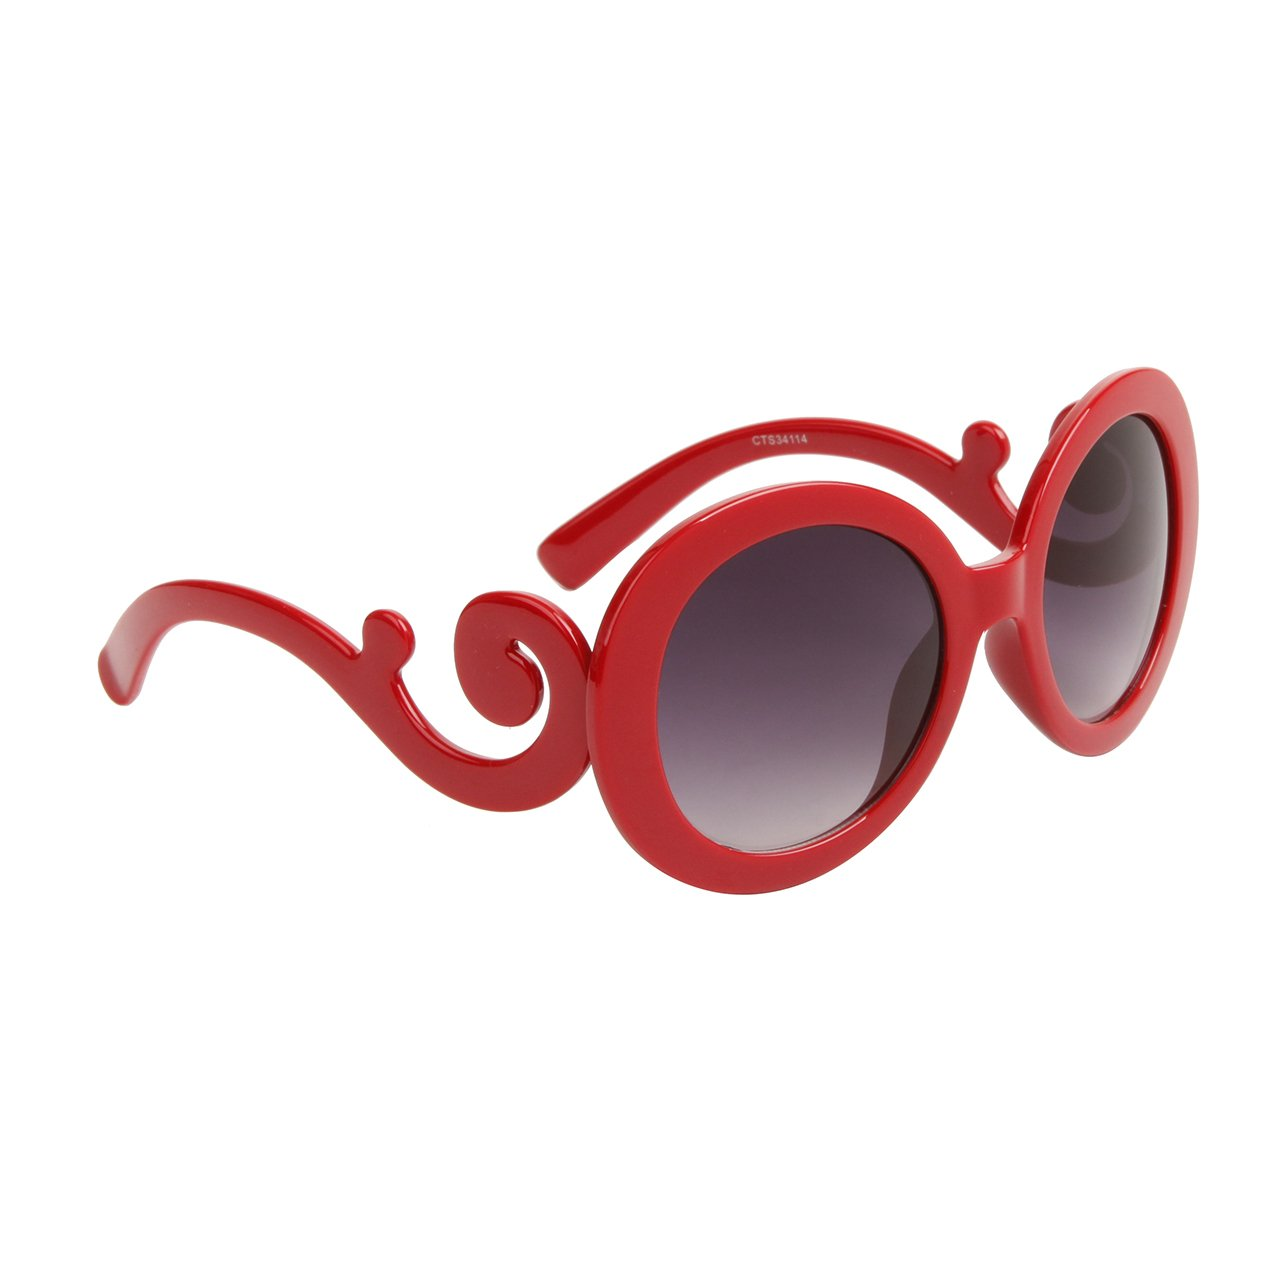 DESIGNER INSPIRED WOMEN'S SUNGLASSES RED FRAME TOP QUALITY UV PROTECTION